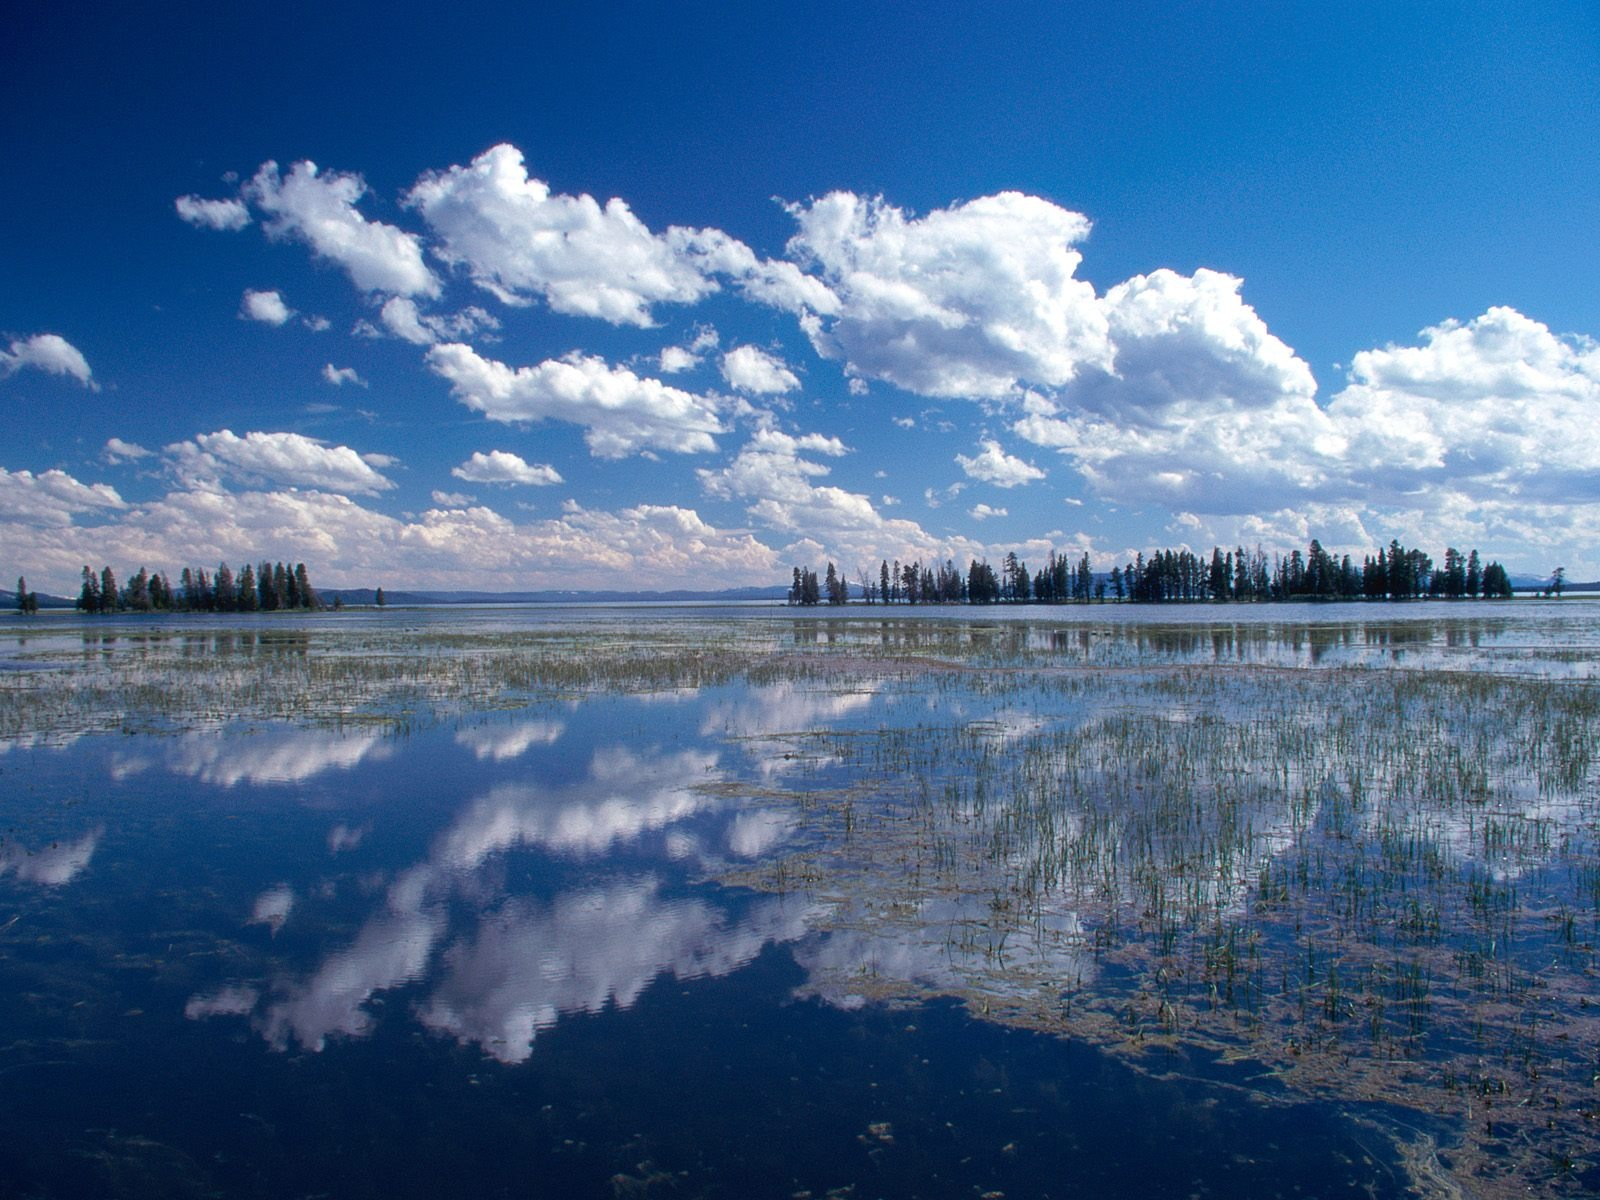 Wallpaper download in nature - Yellowstone Lake Wallpaper Landscape Nature